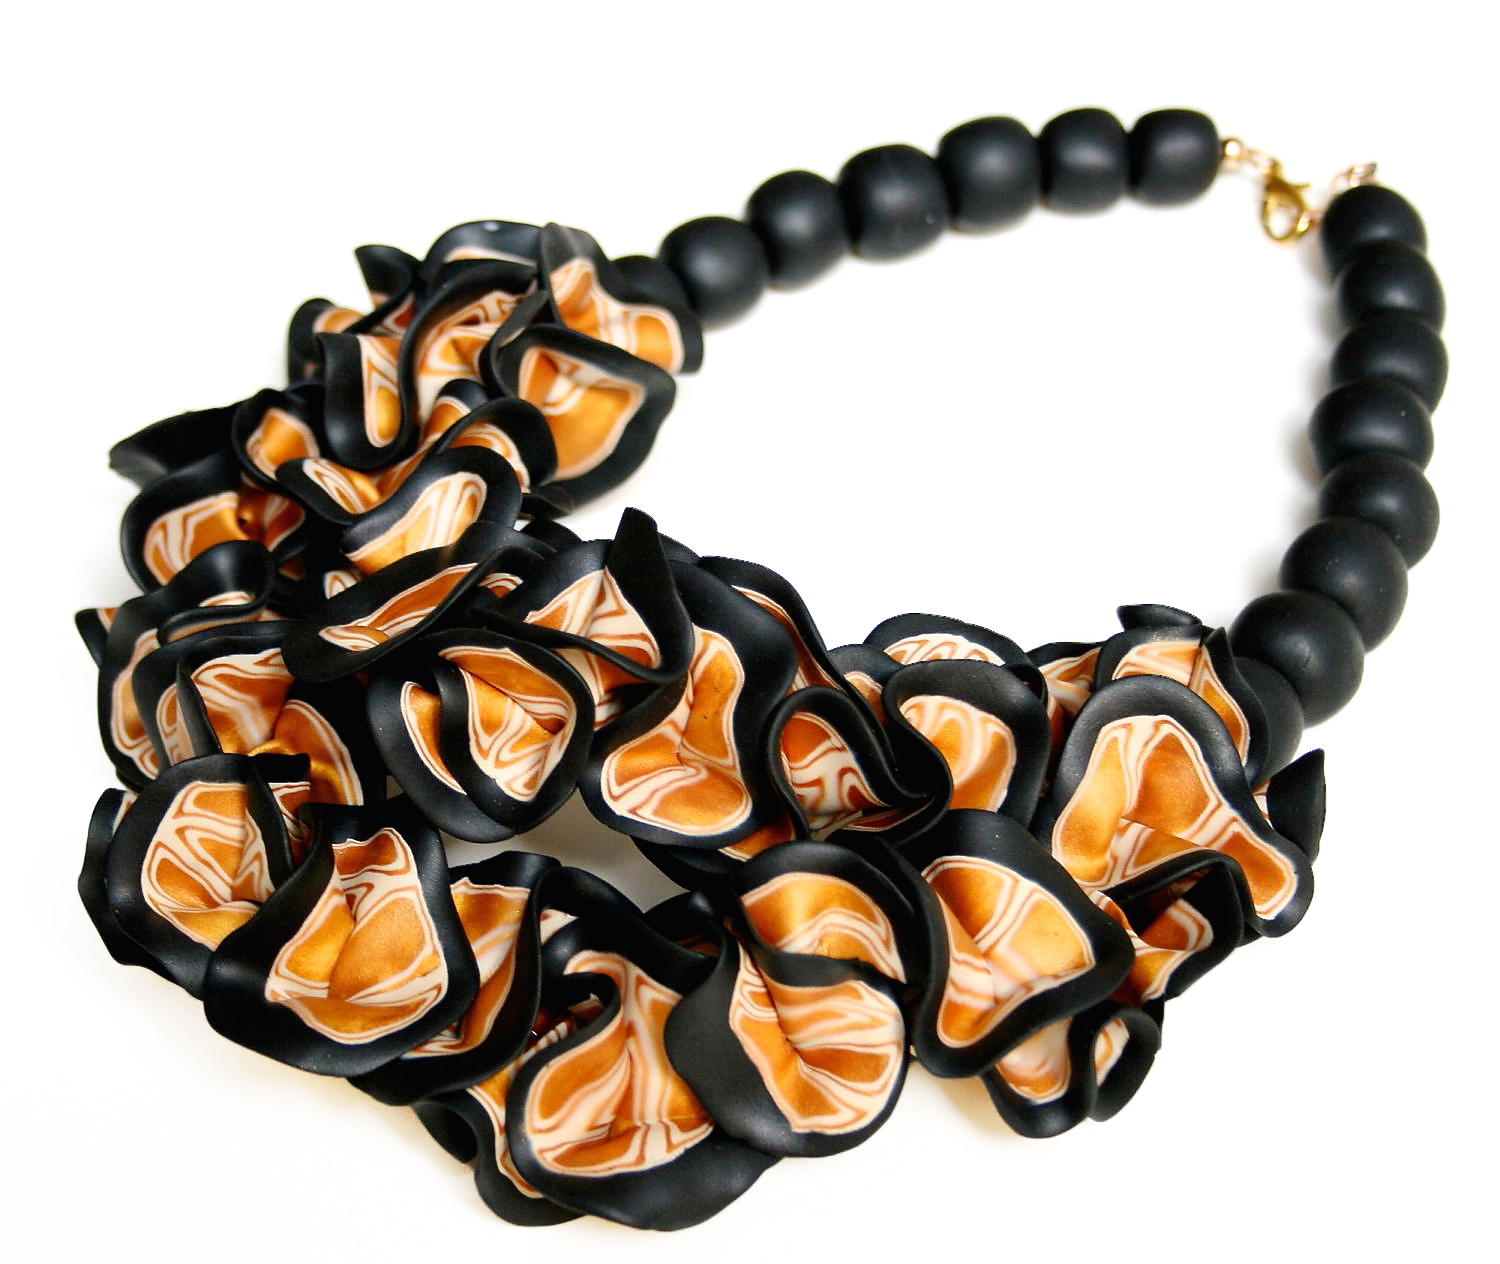 Black and gold ruffle necklace